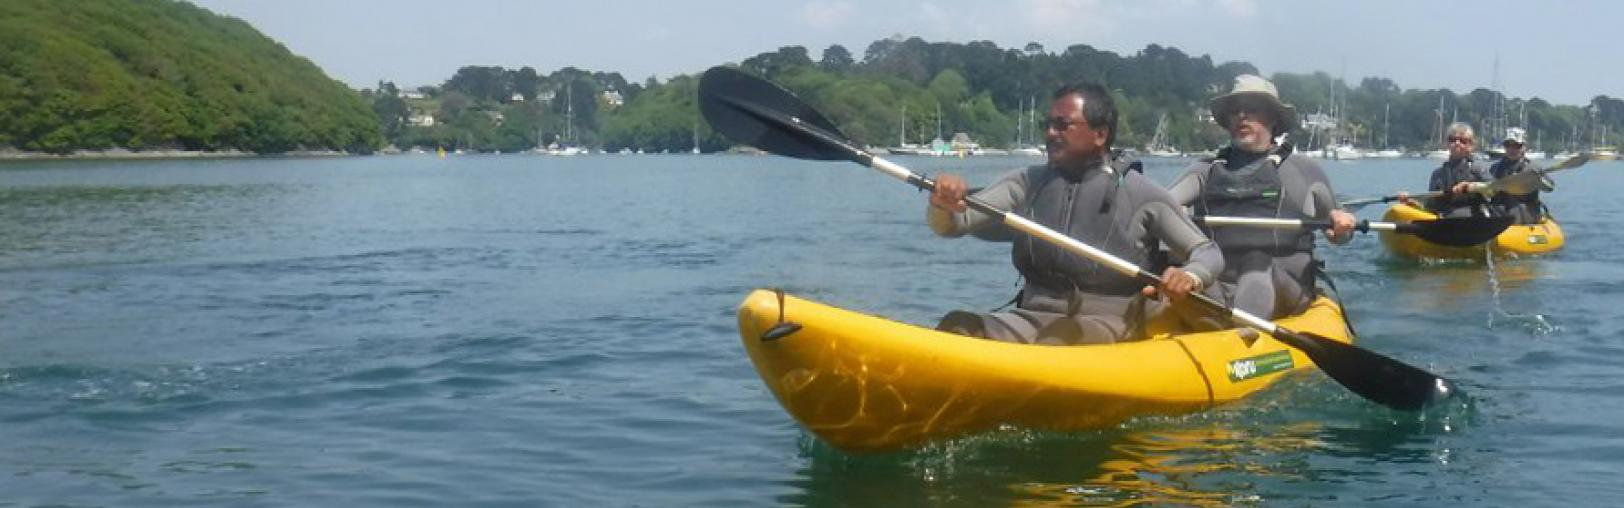 Kayaking on the Helford